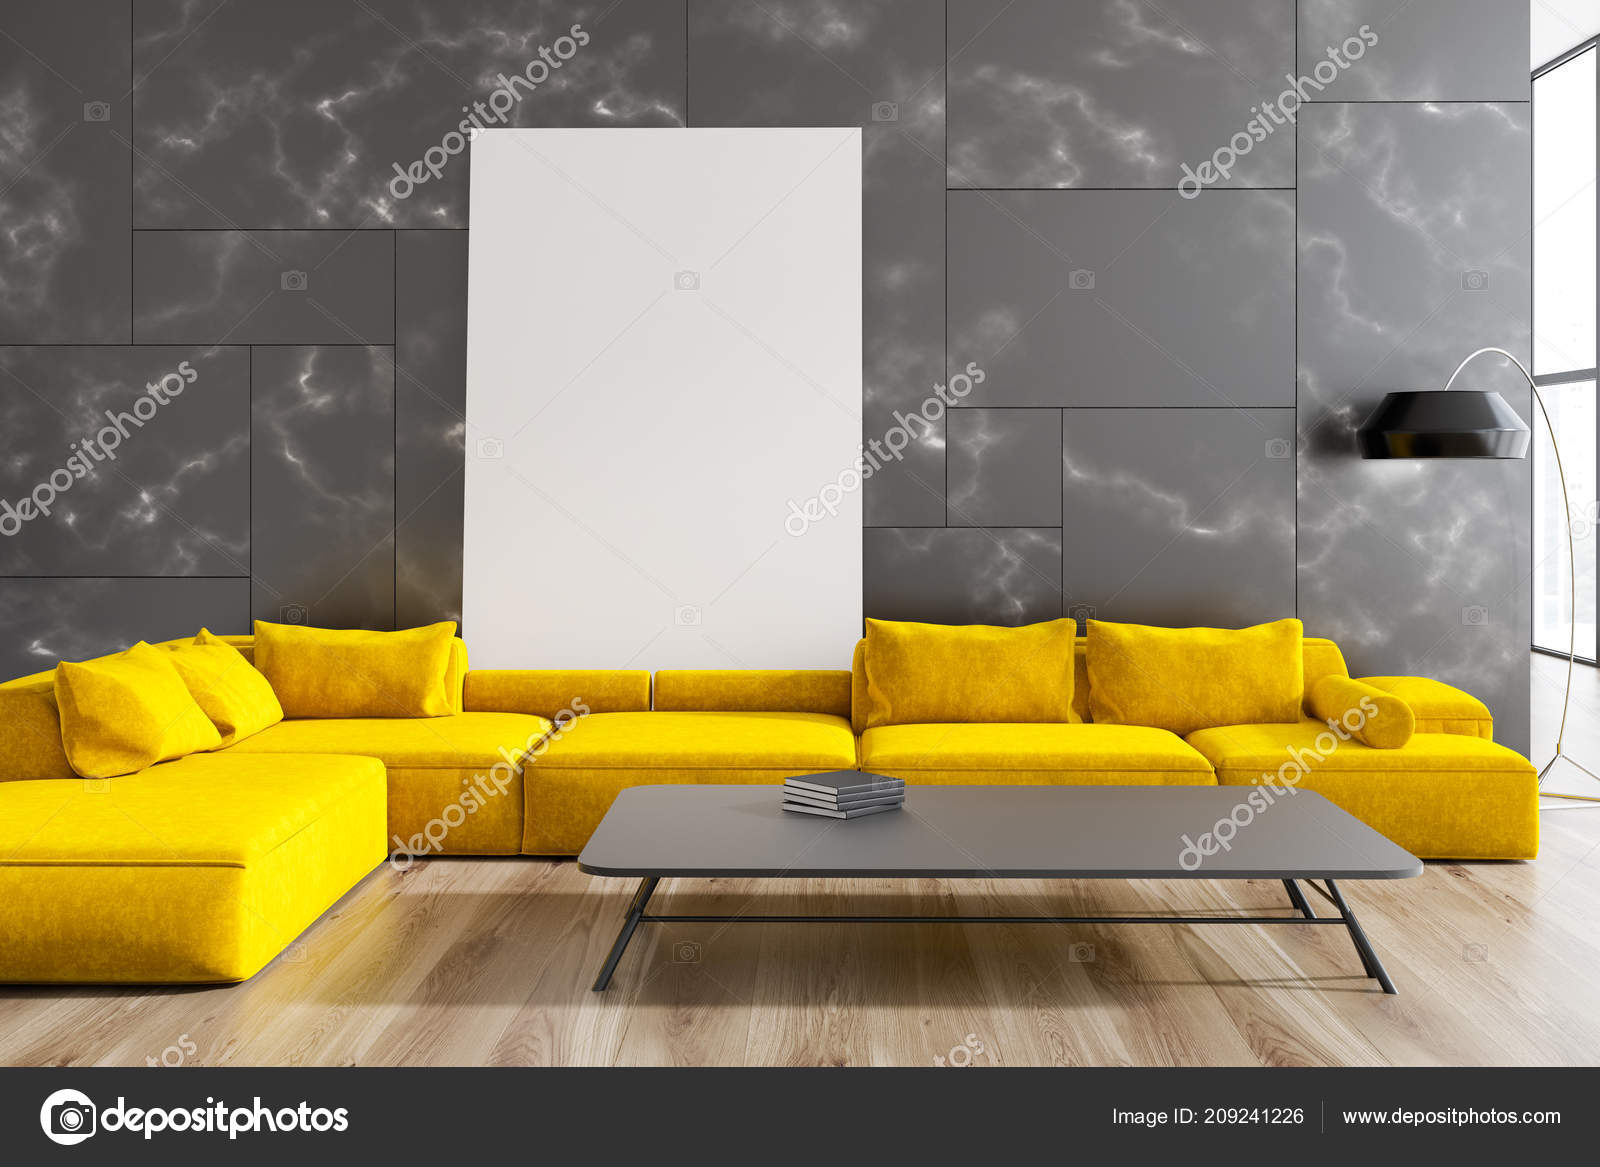 Modern Living Room Interior Black Marble Walls Wooden Floor Yellow Stock Photo C Denisismagilov 209241226